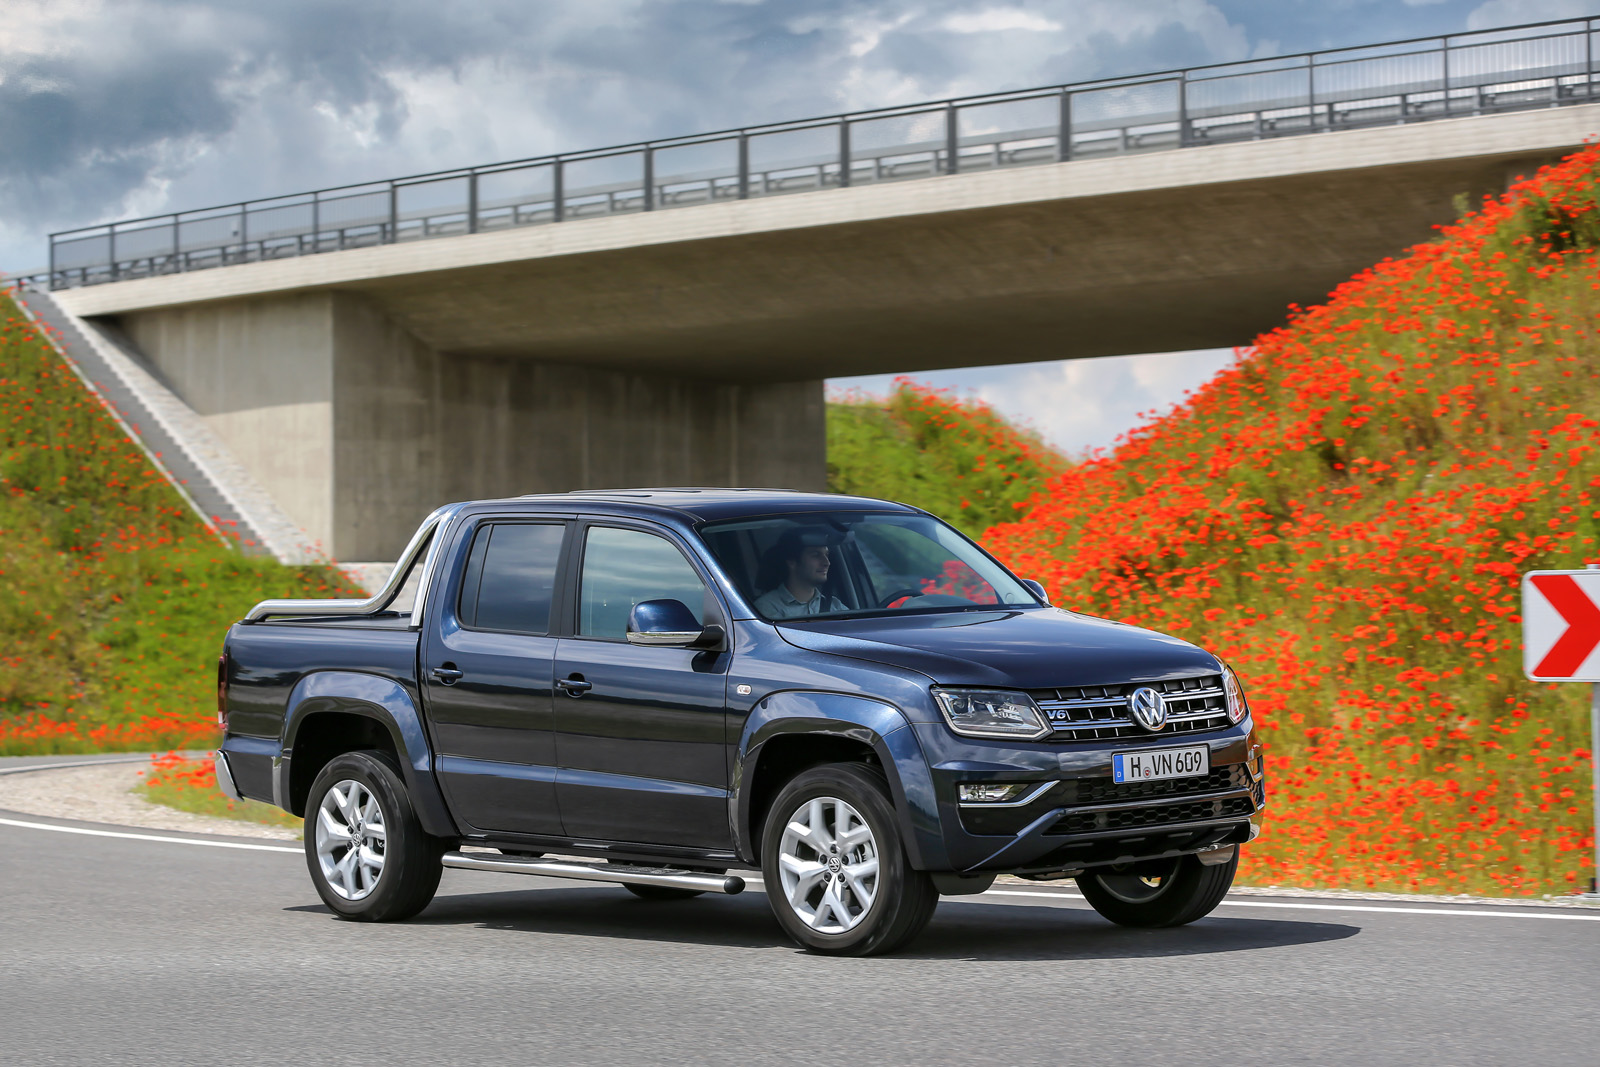 Vw Diesel Truck >> 2017 VW Amarok Gets 201 HP Diesel Engine, Canyon Edition | Carscoops